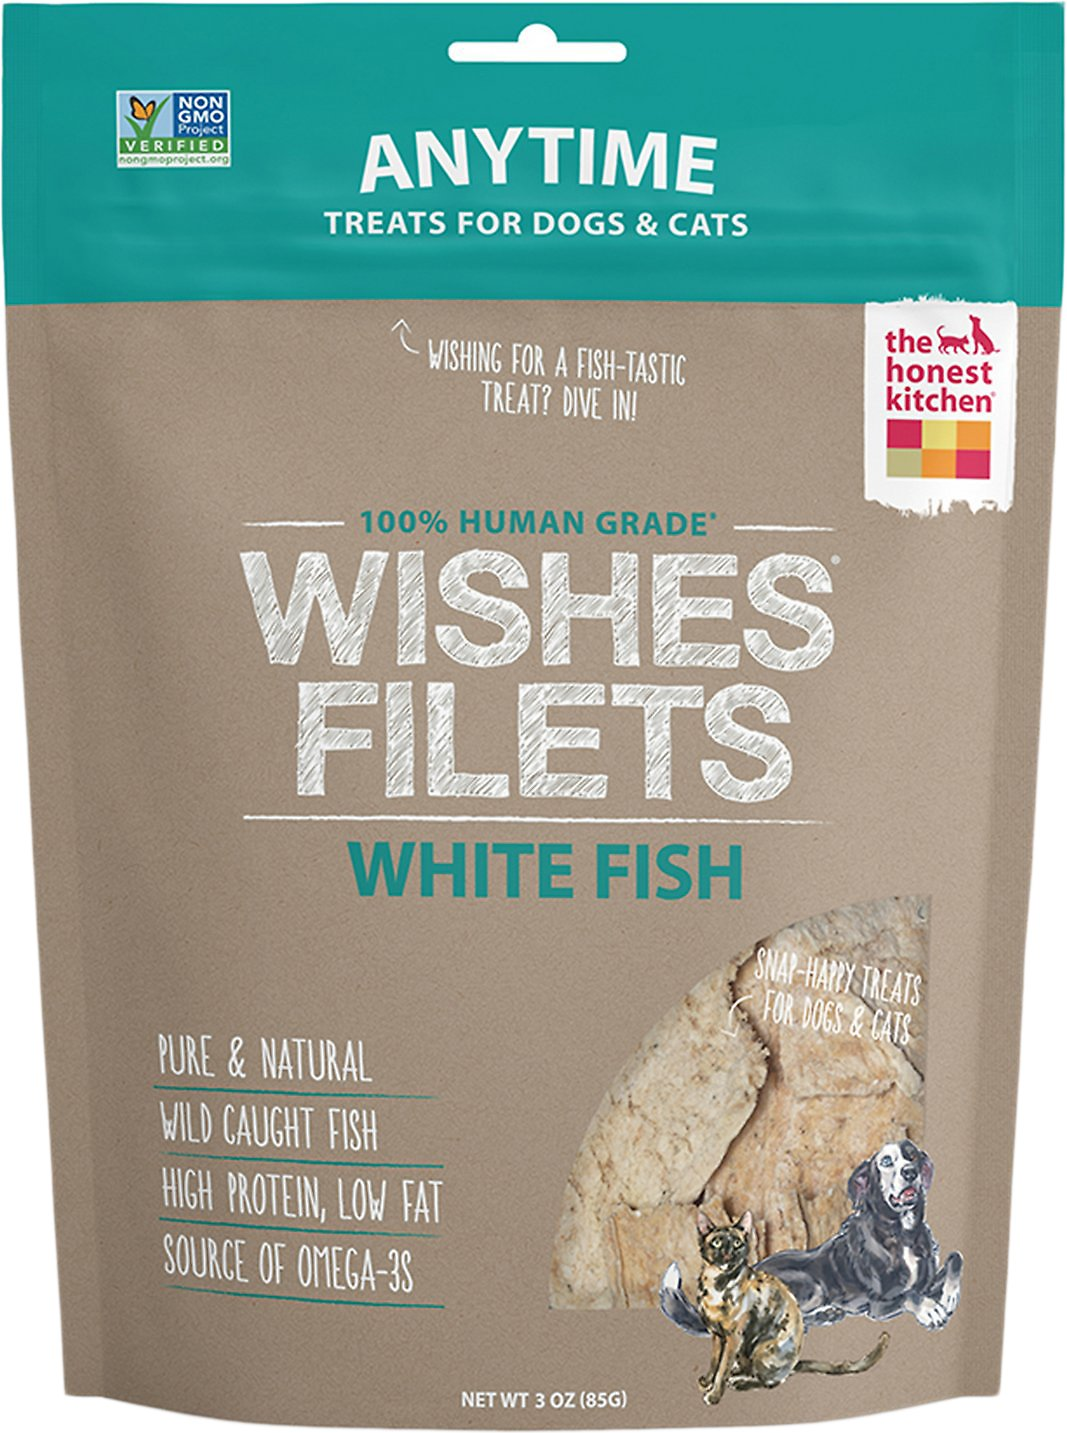 The Honest Kitchen Wishes Dehydrated White Fish Filets Dog & Cat Treats, 3-oz bag Image